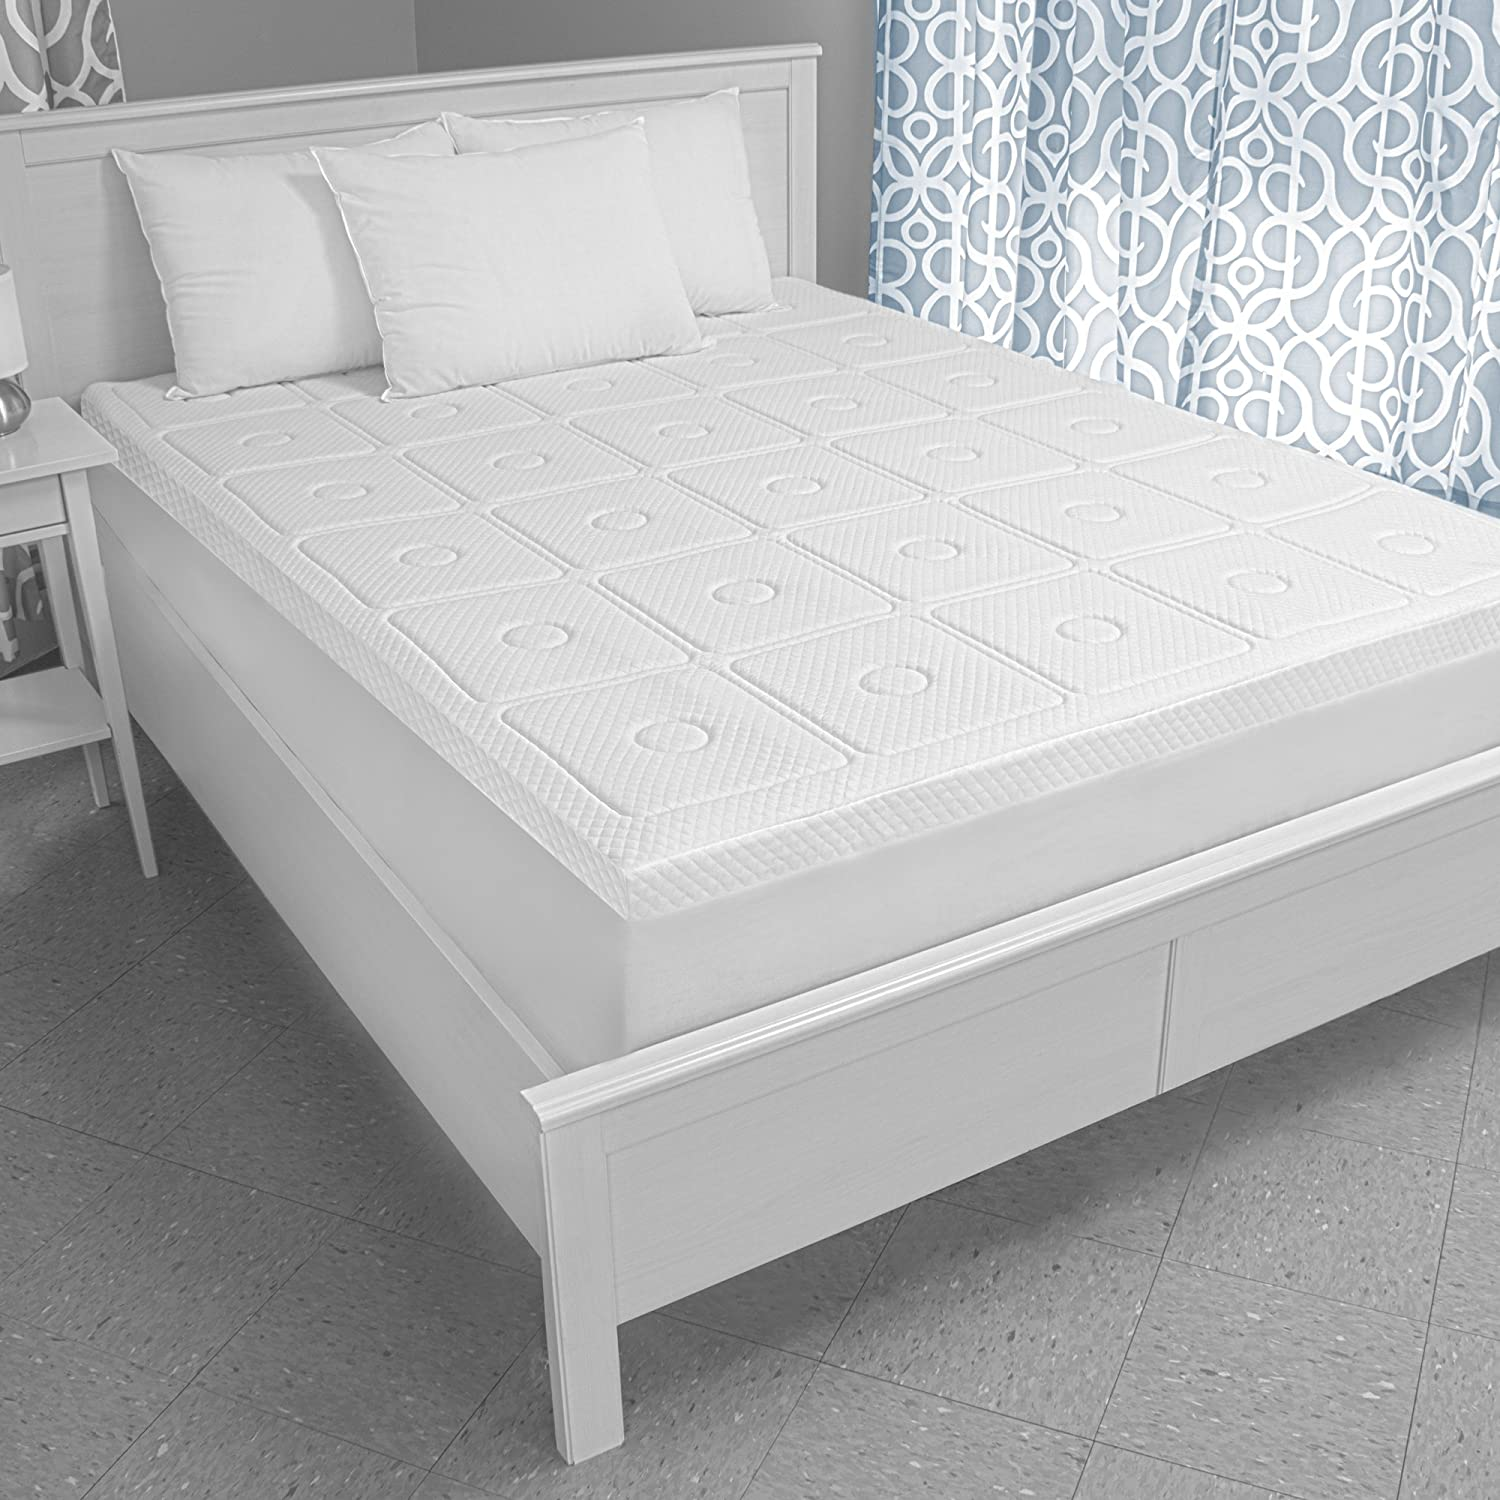 Amazon.com: SensorPEDIC Luxury Extraordinaire 3-Inch Quilted Memory Foam Mattress  Topper, Twin Size, White: Home & Kitchen